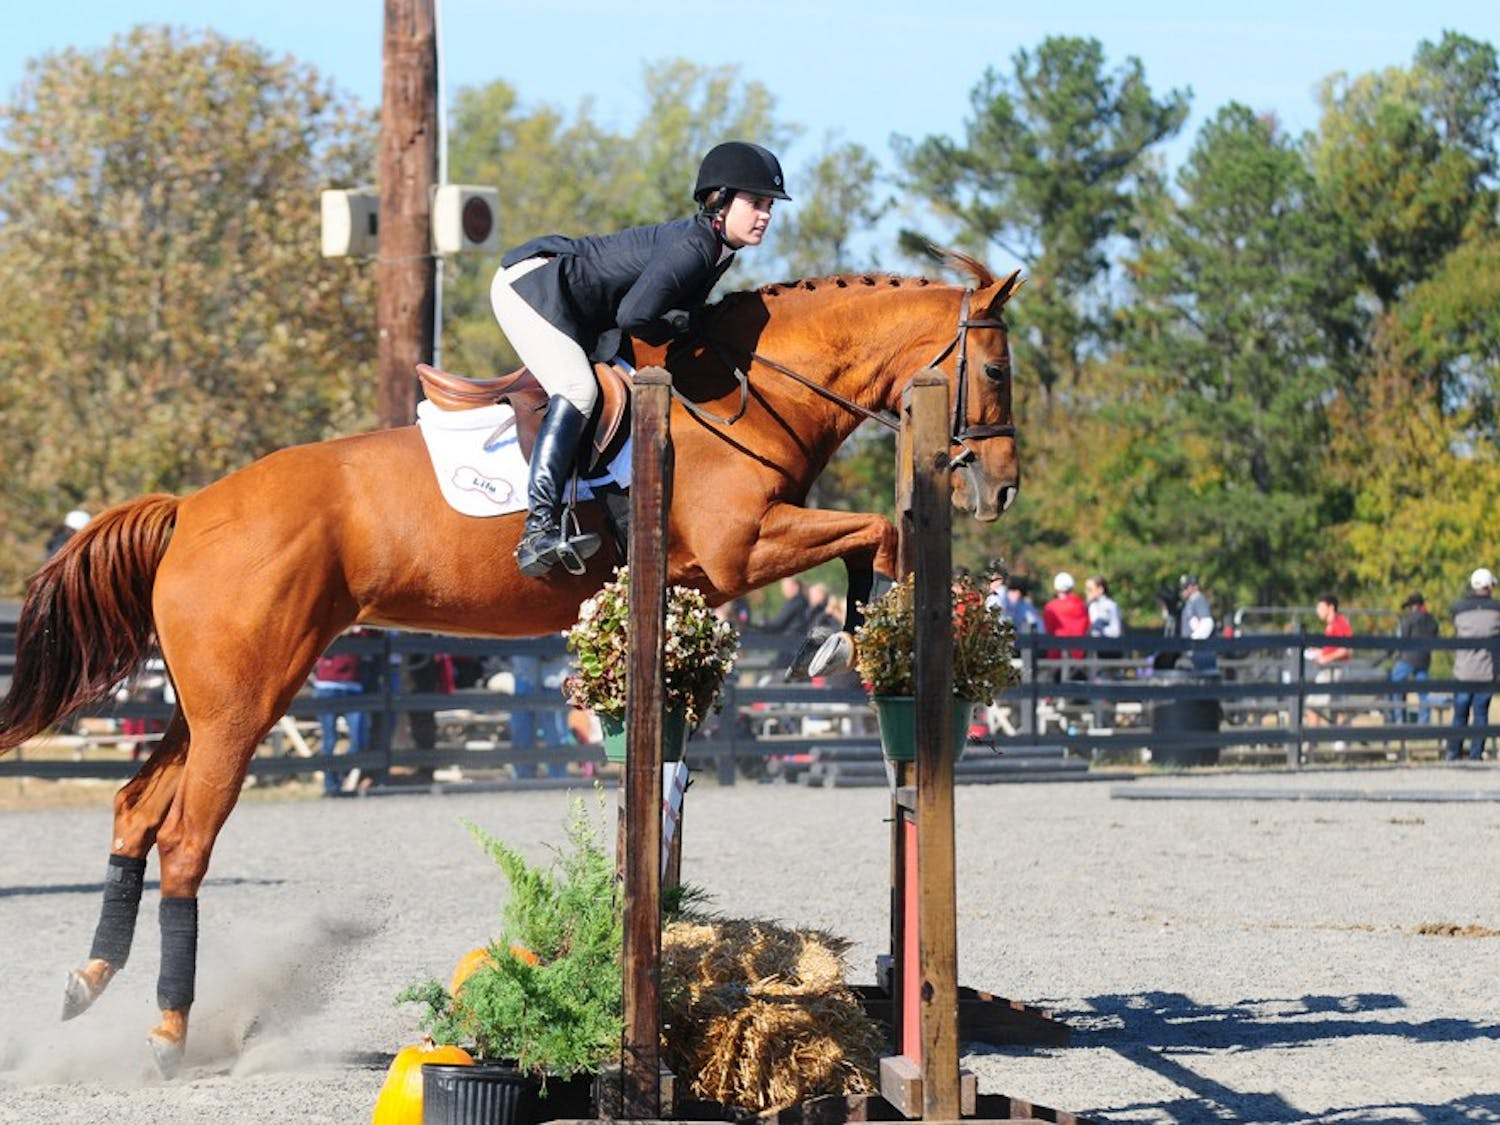 Senior Kimberly McCormack (above) and the equestrian team will compete at nationals after winning the SEC Championship.